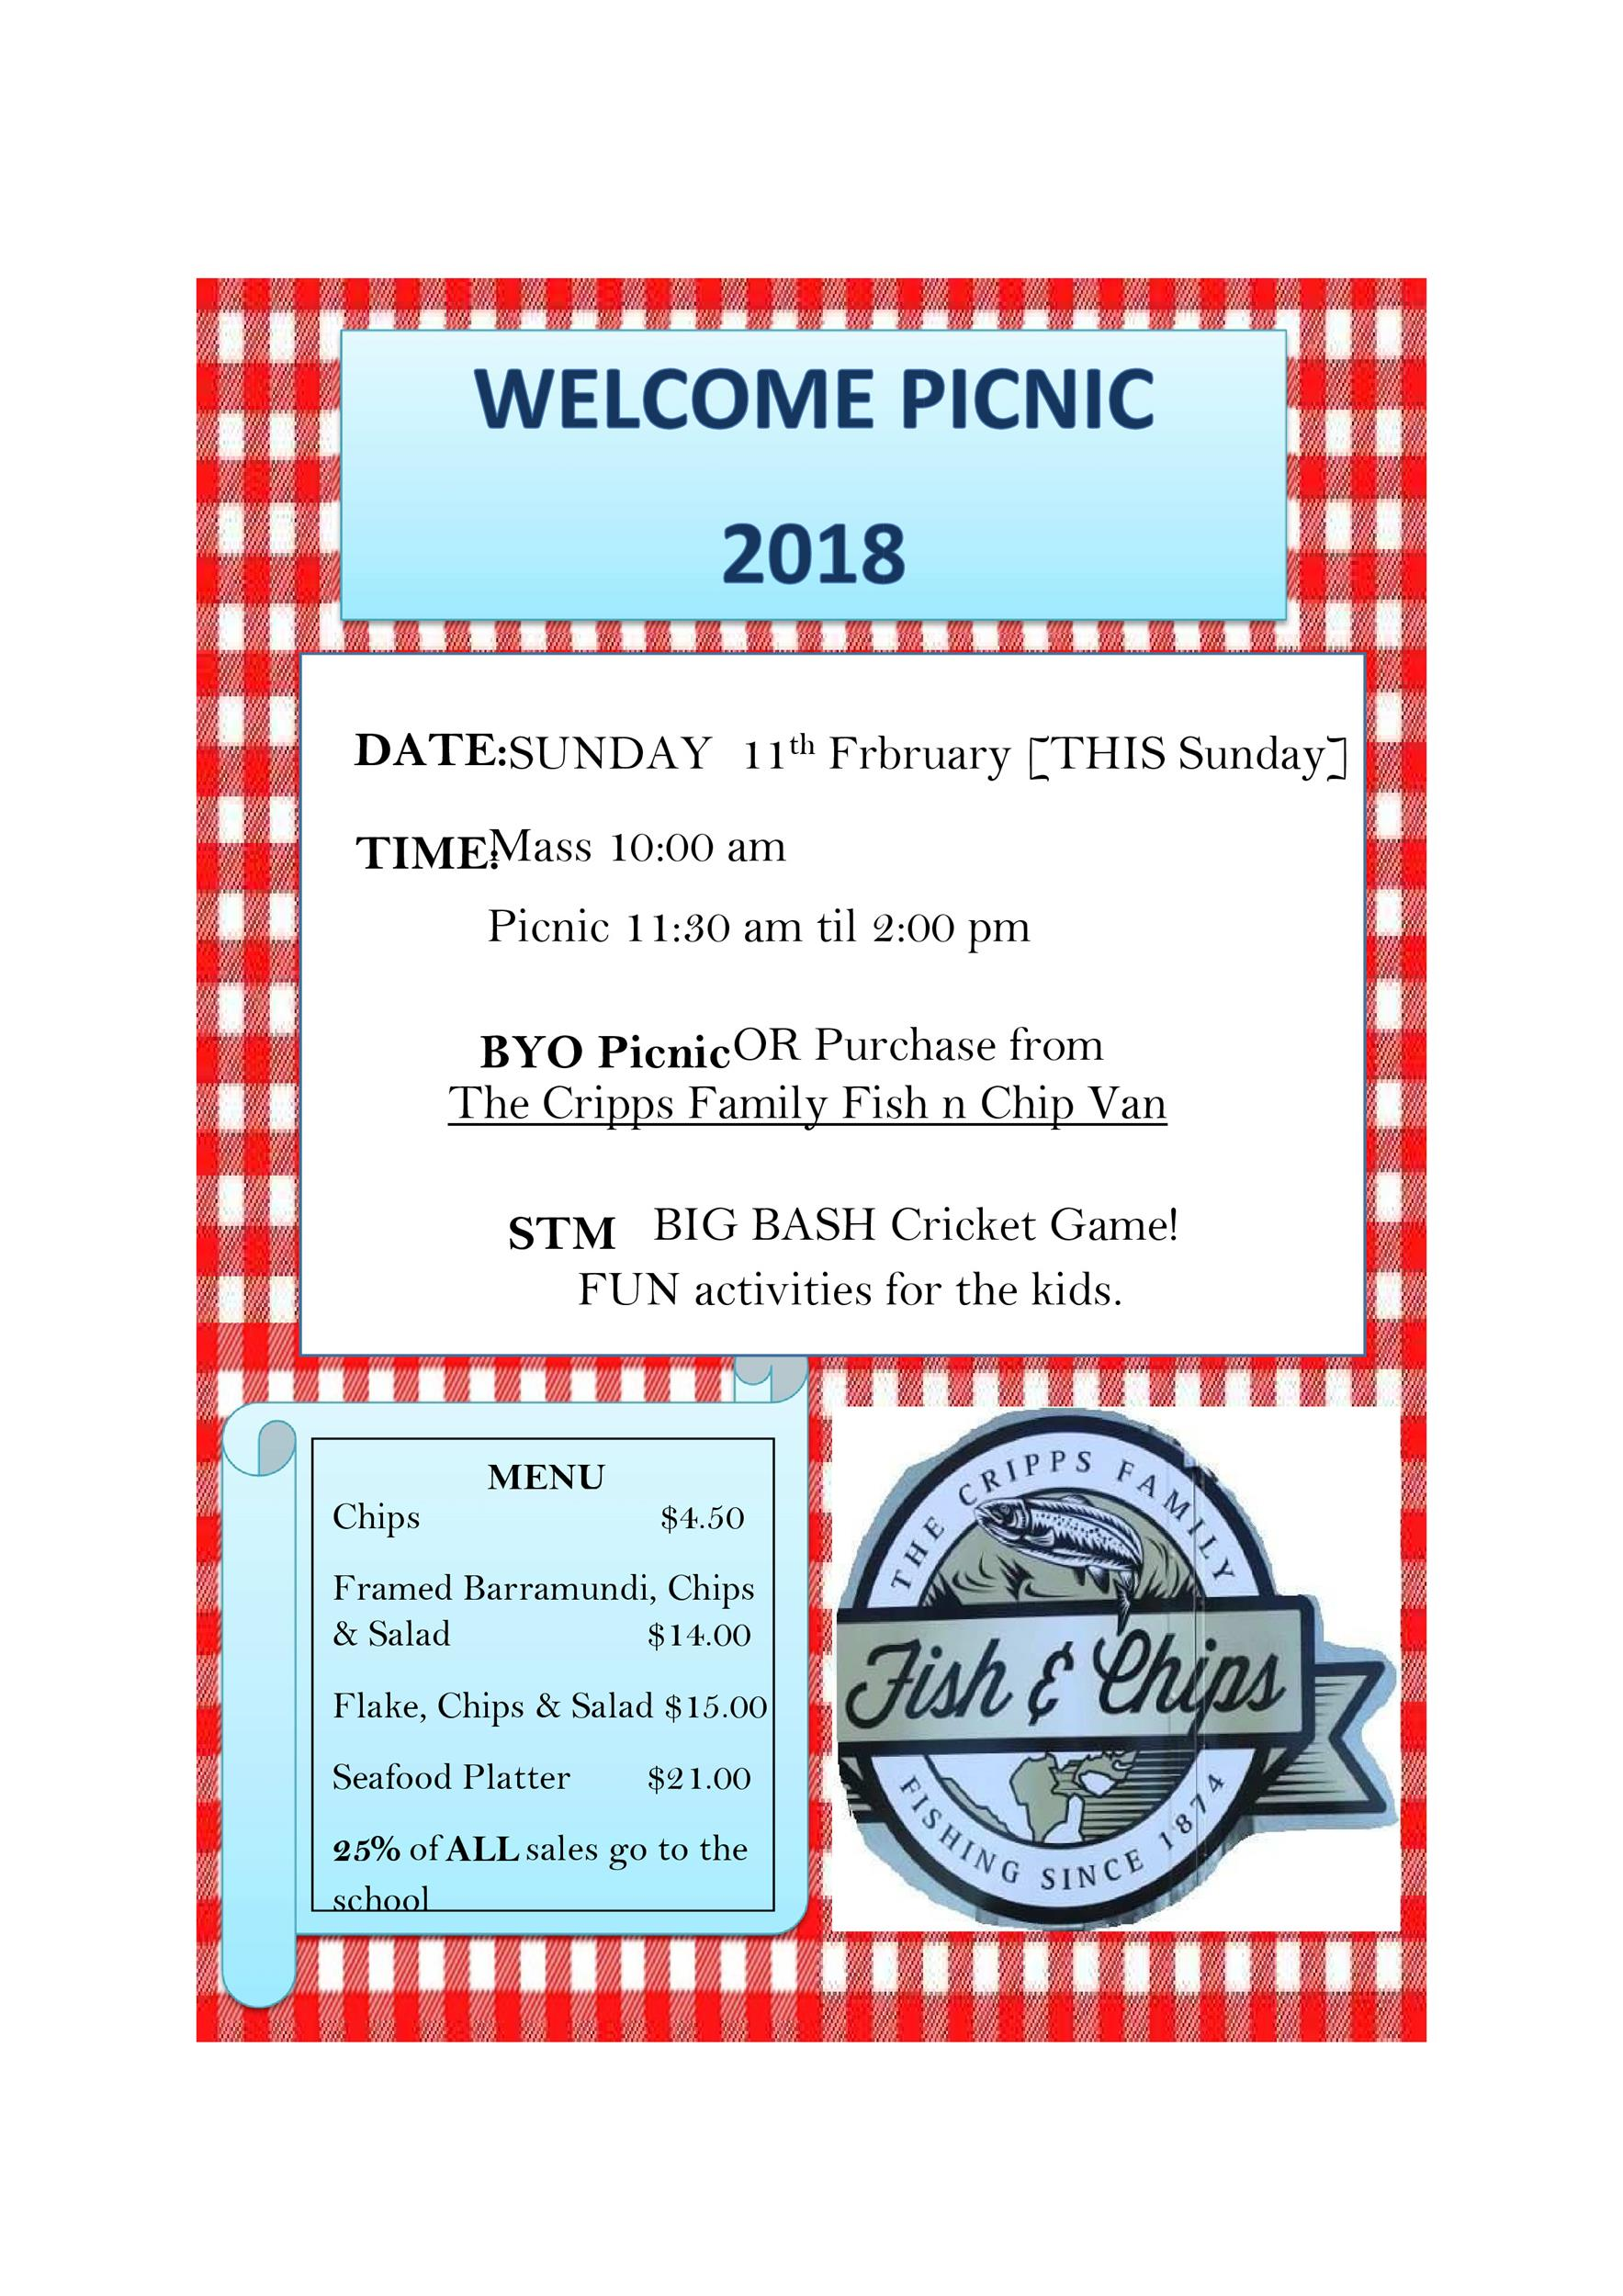 photo about Free Printable Picnic Invitation Template identify 45 Wonderful Picnic Flyer Templates (Cost-free Down load) ᐅ